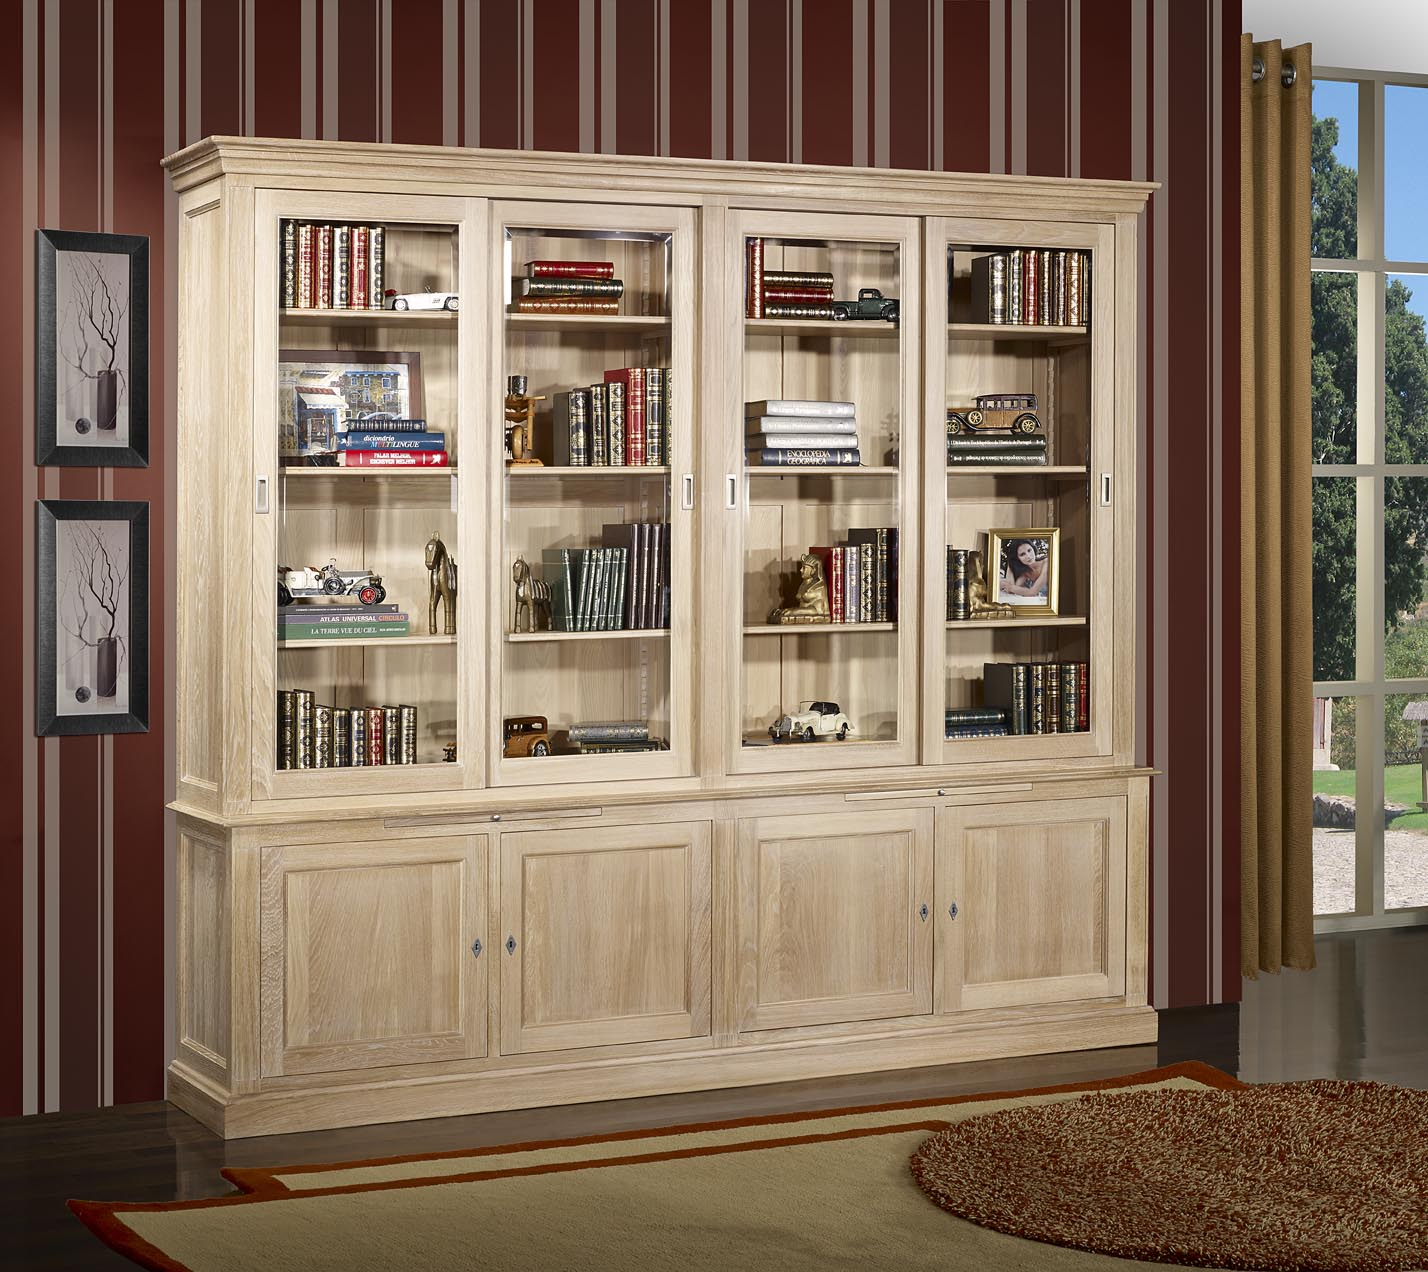 Meuble Tv Biblioth Que Bois Artzein Com # Creation Meuble Tv Bibliotheque Bureau